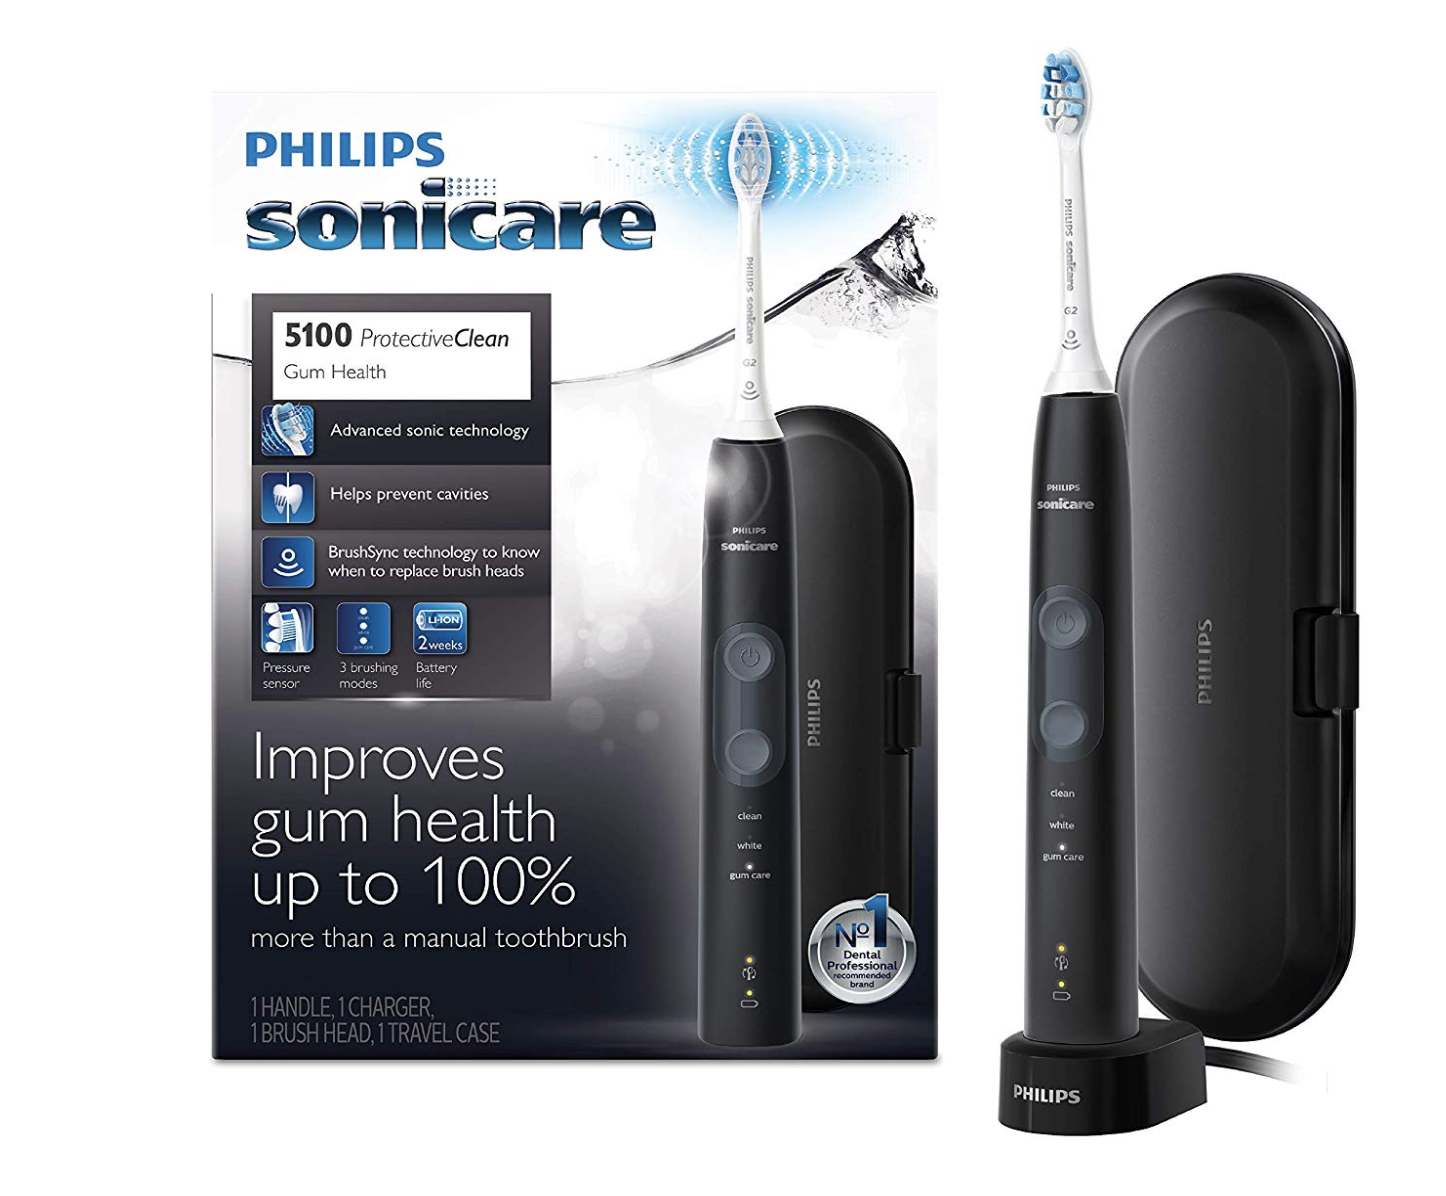 Philips Sonicare ProtectiveClean 5100 Electric Rechargeable Toothbrush